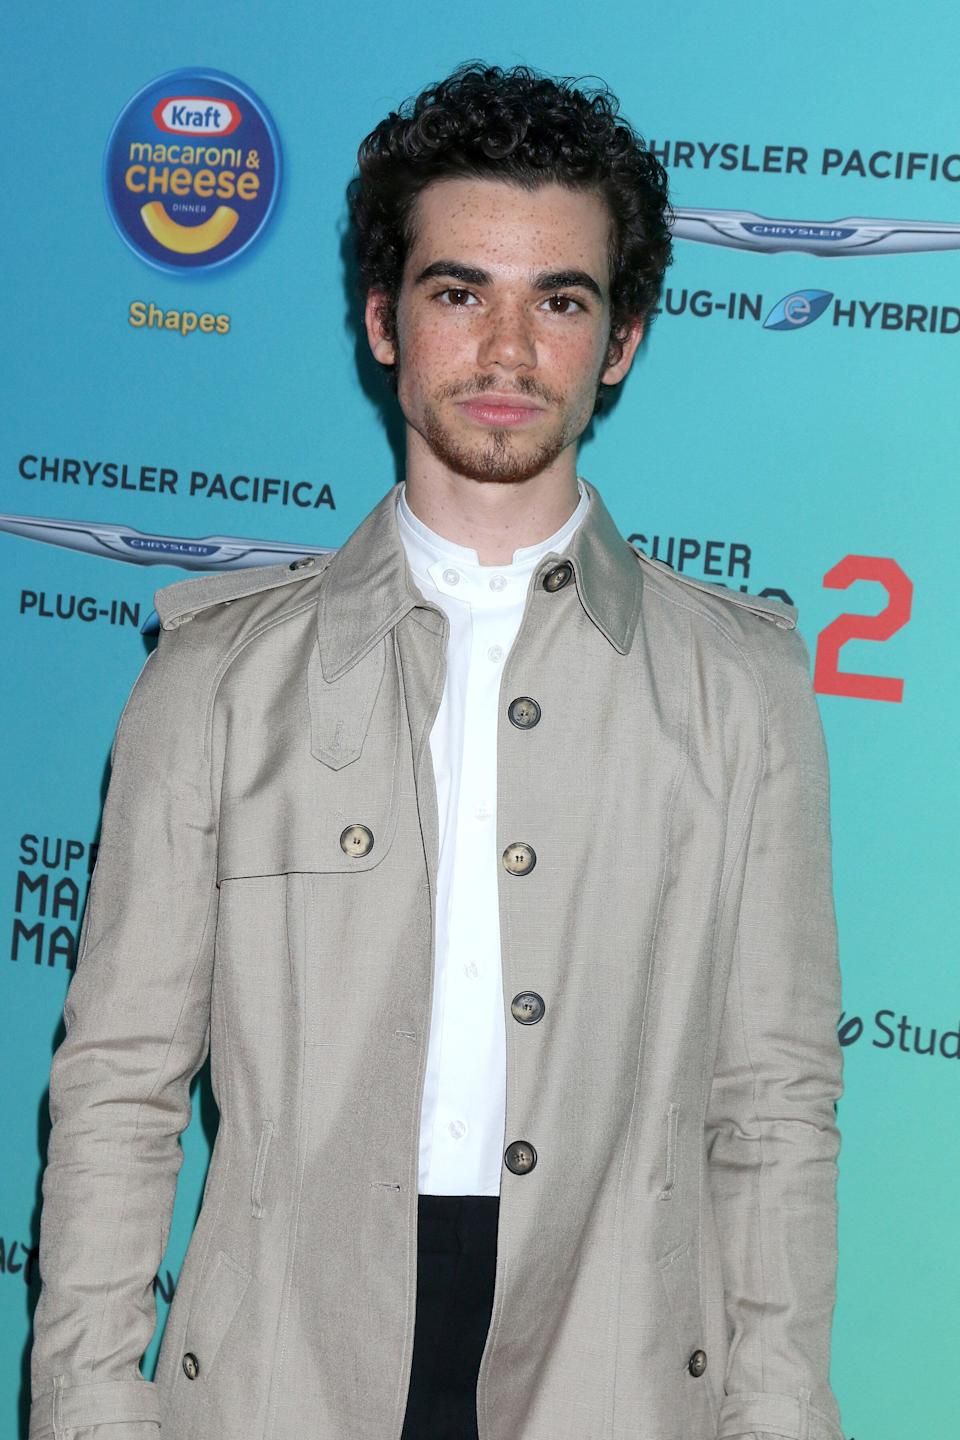 <strong>Cameron Boyce (1999-2019)</strong><br />The Disney star died suddenly from epilepsy after being found unconscious at his home in North Hollywood. He was best-known for his role in the Disney franchise Descendants and the TV show Jessie.